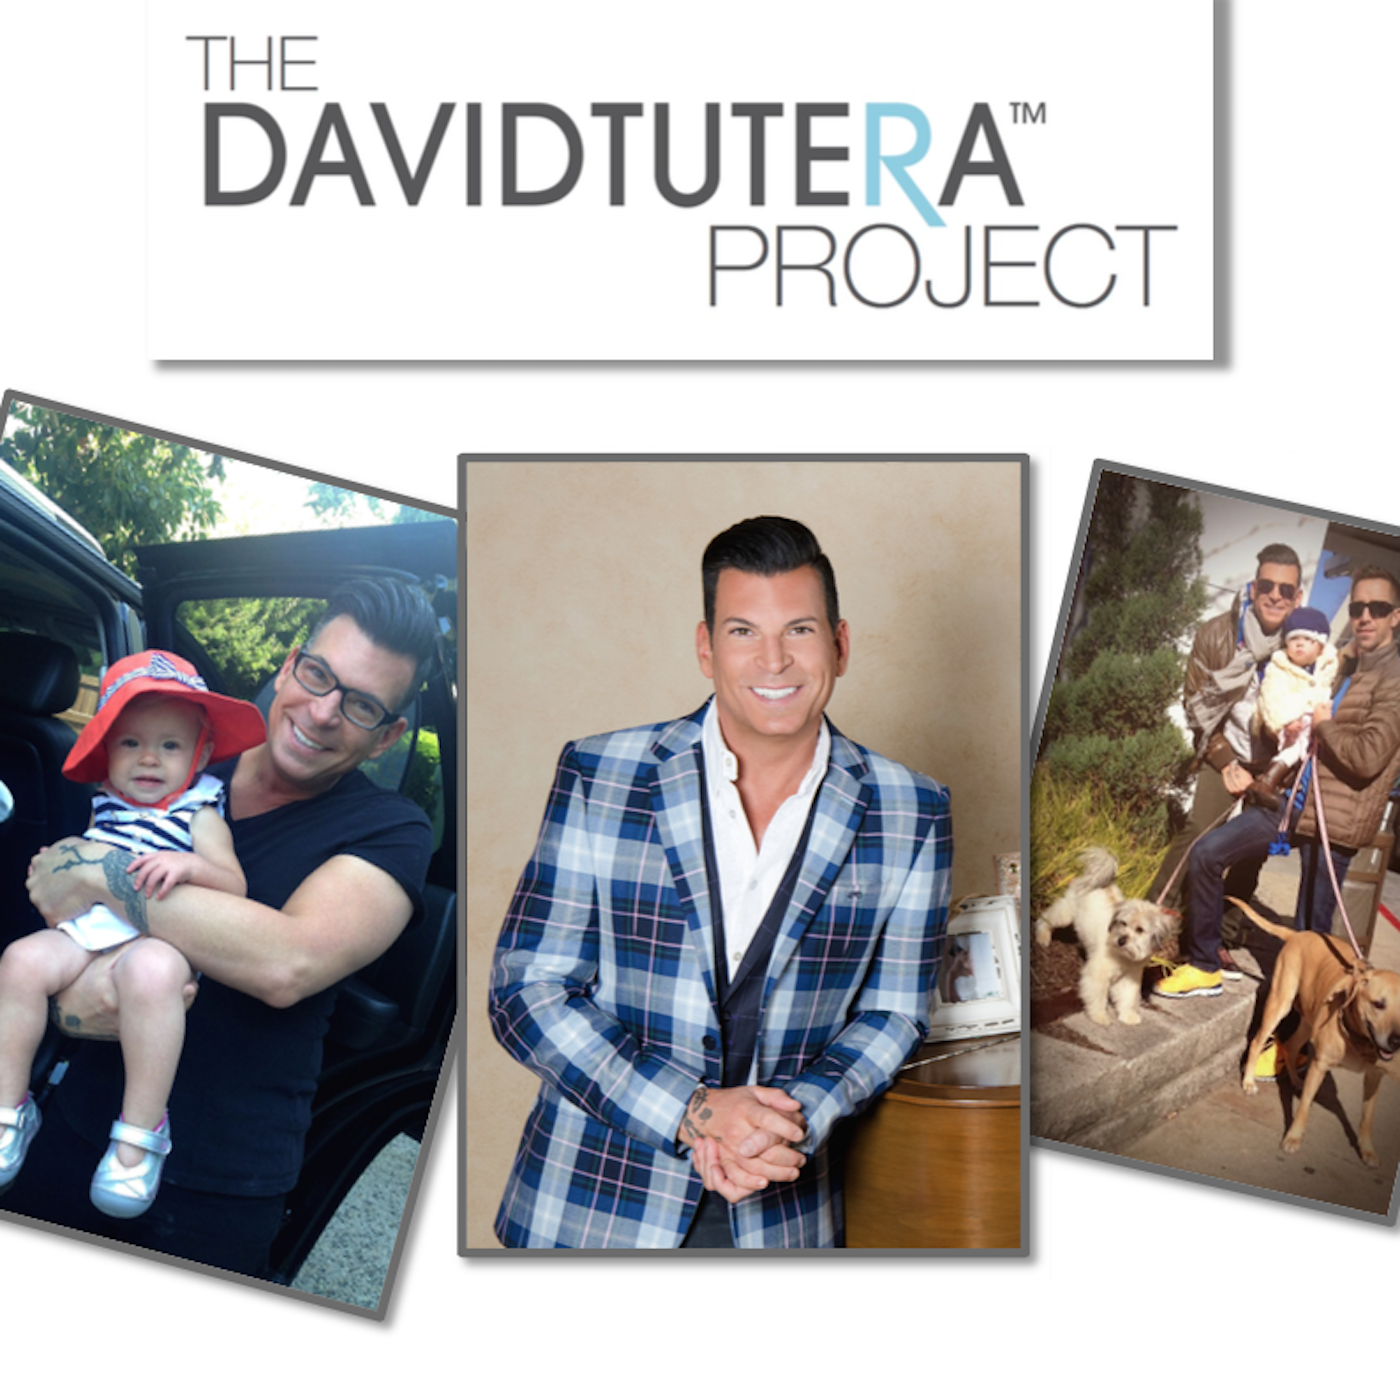 The David Tutera Project